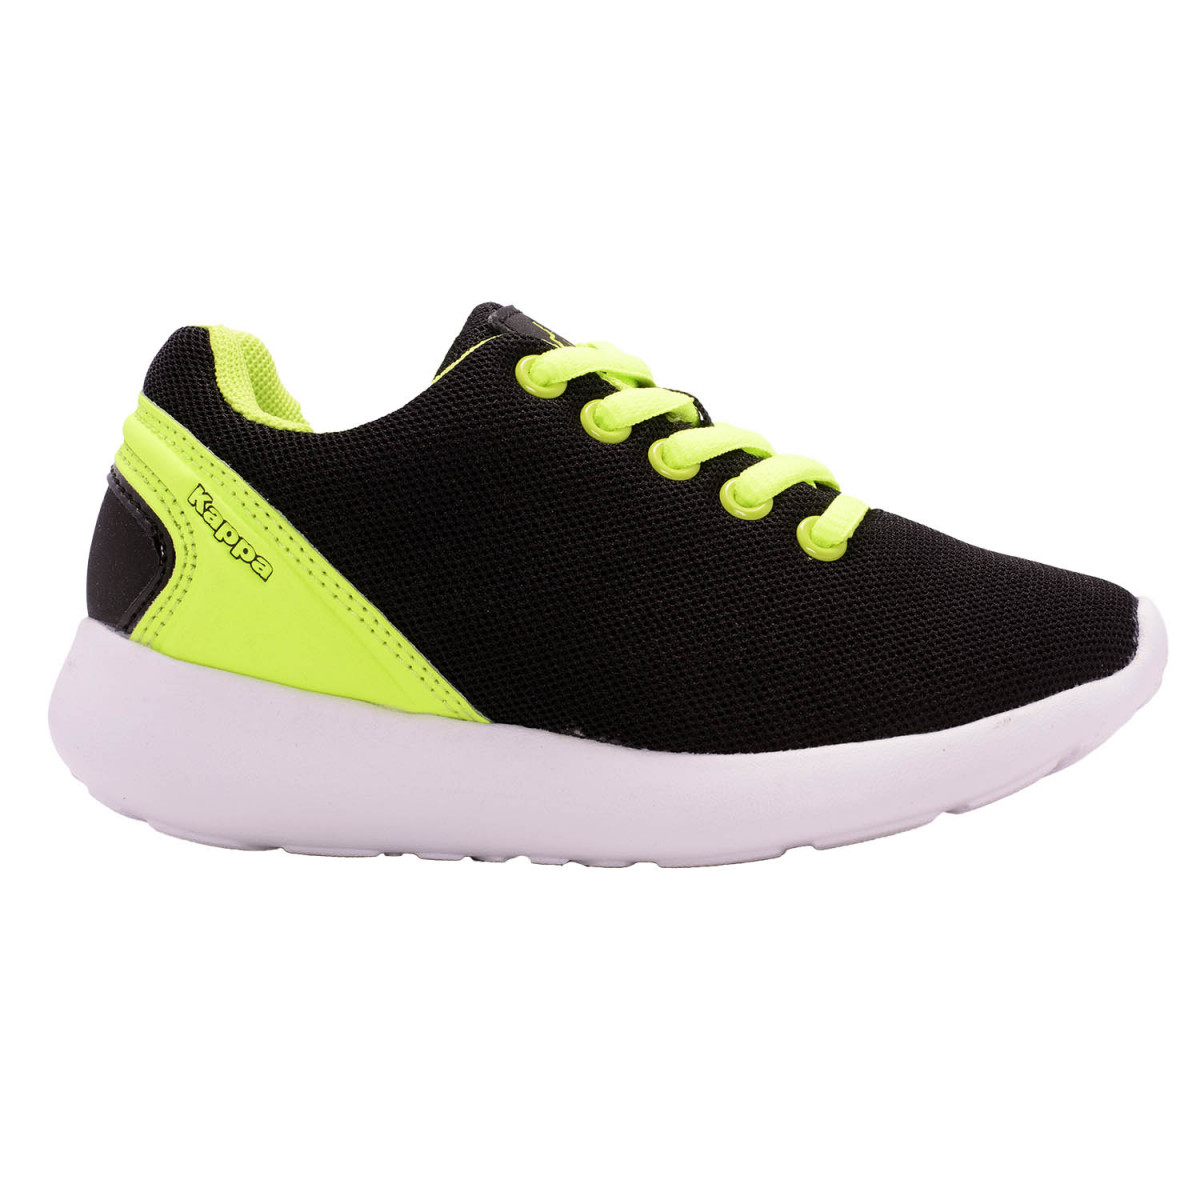 Zapatillas Kappa Calita 5b2c14ff12461